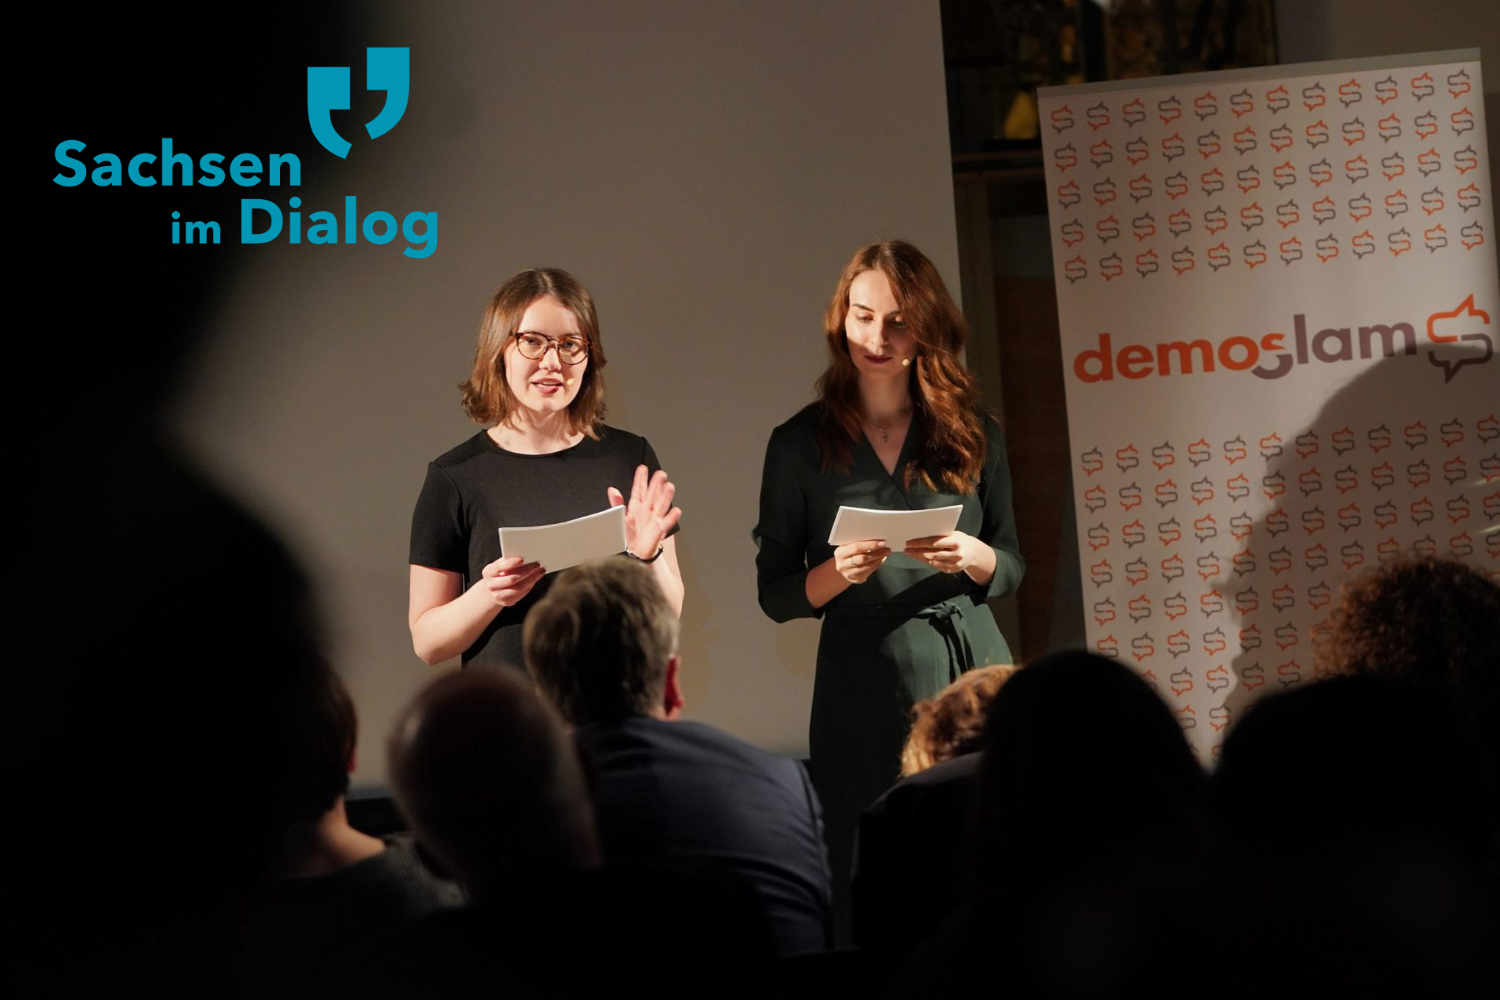 demoSlam: The Slam for Young Dispute Culture in Saxony